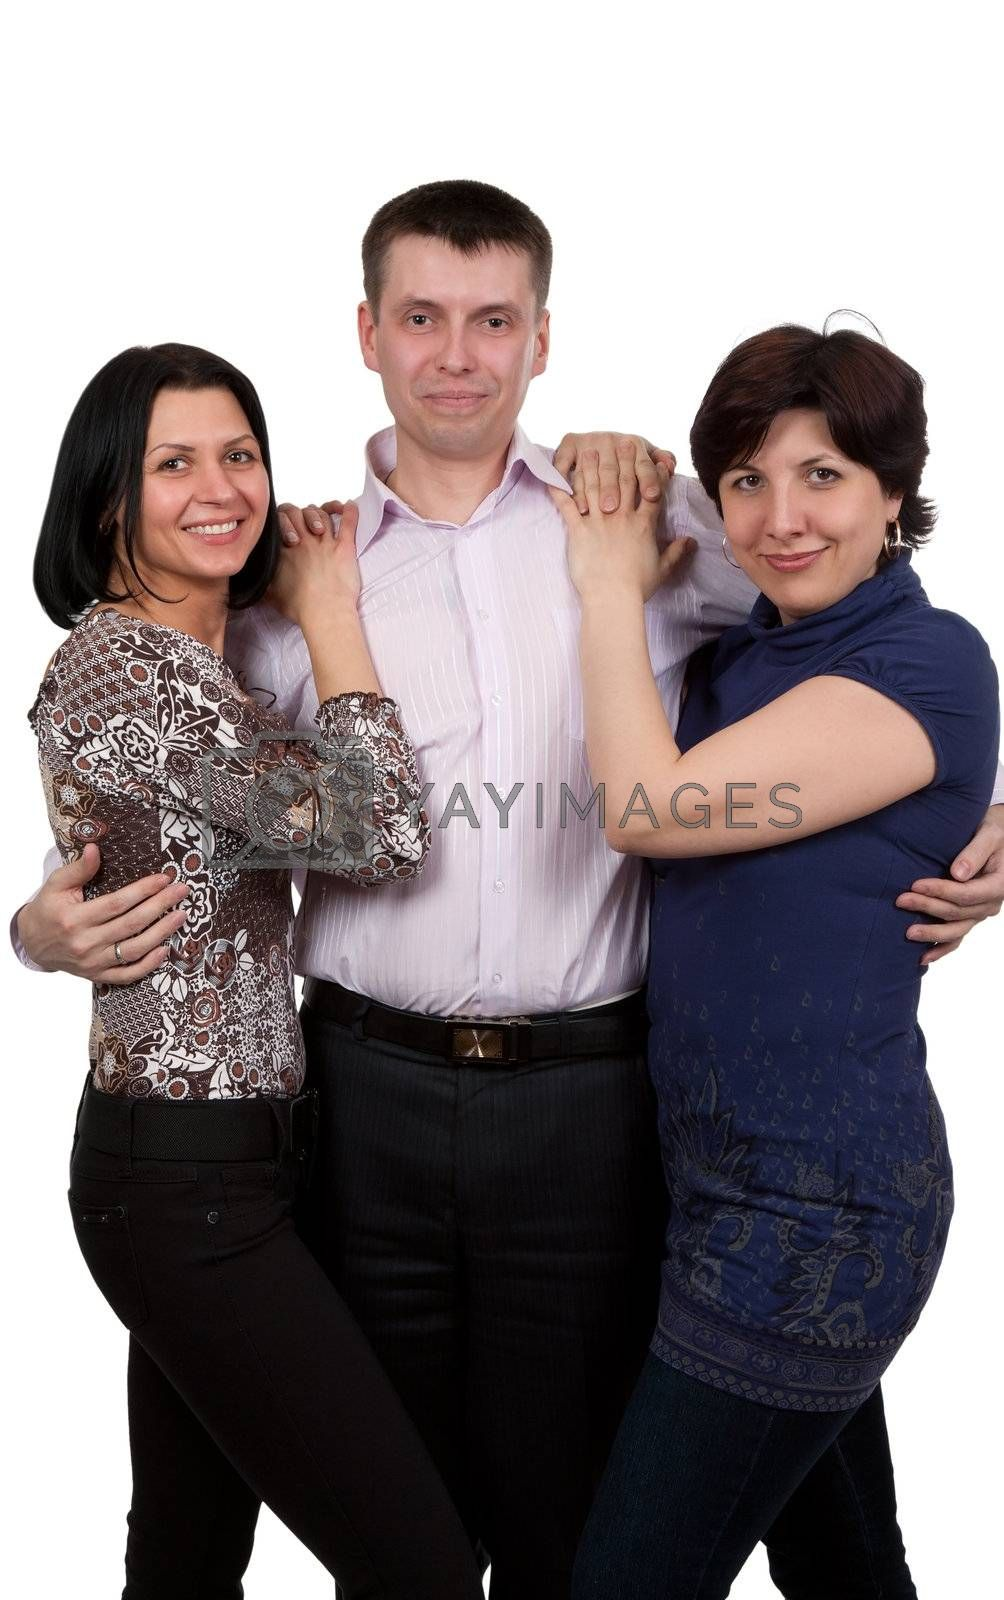 man and two women isolated on white background